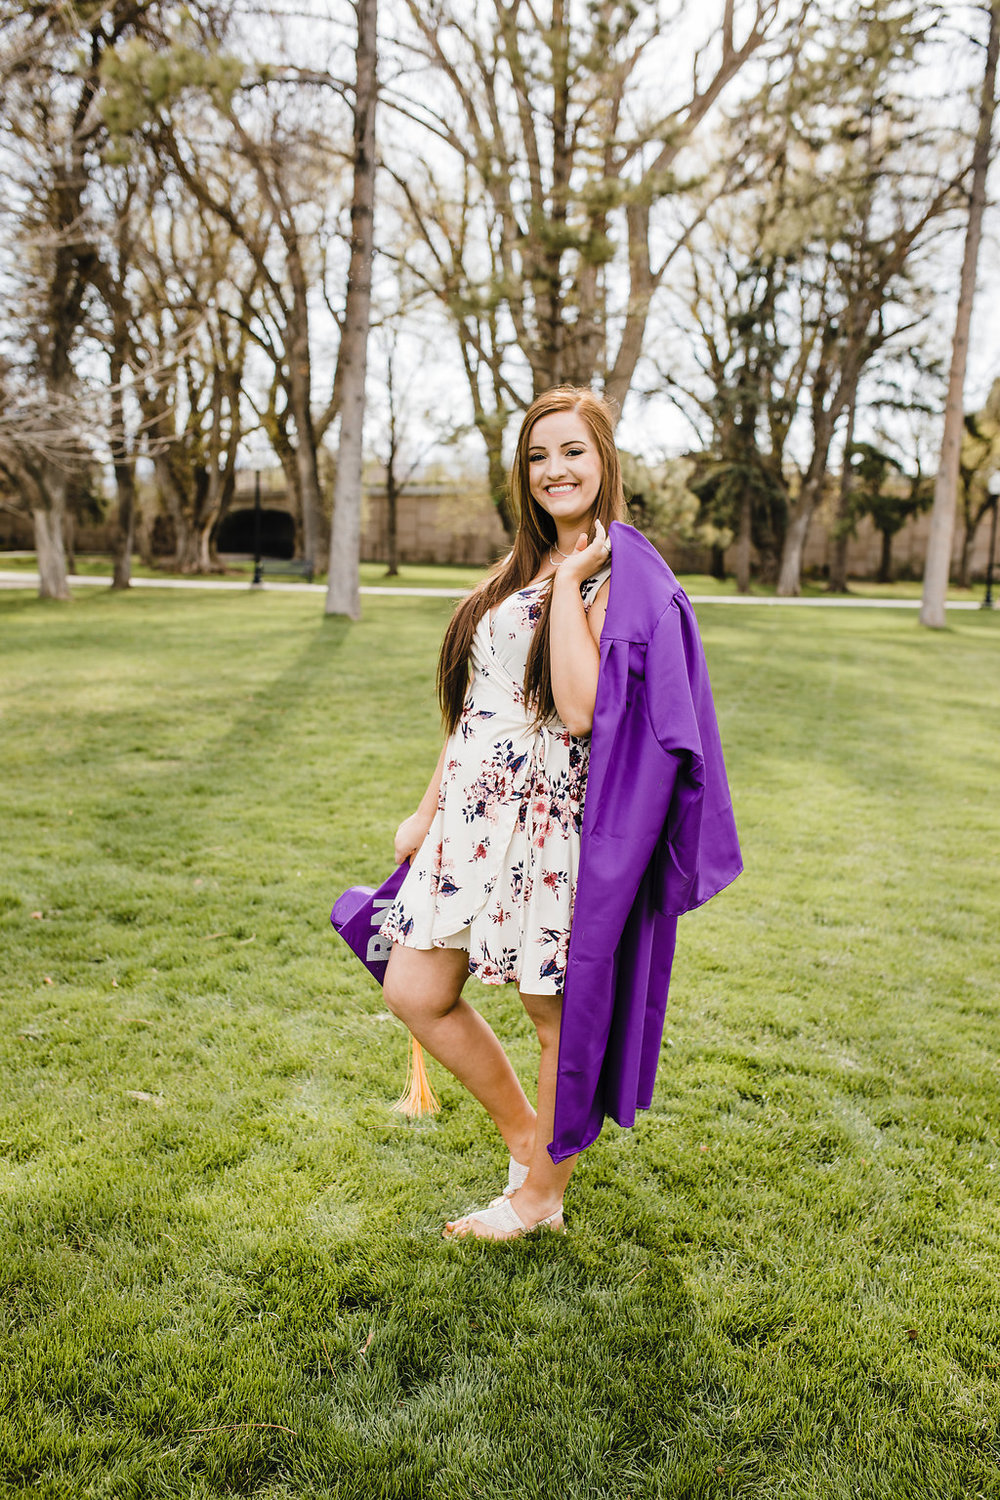 graduation cap and gown photos senior pictures logan utah